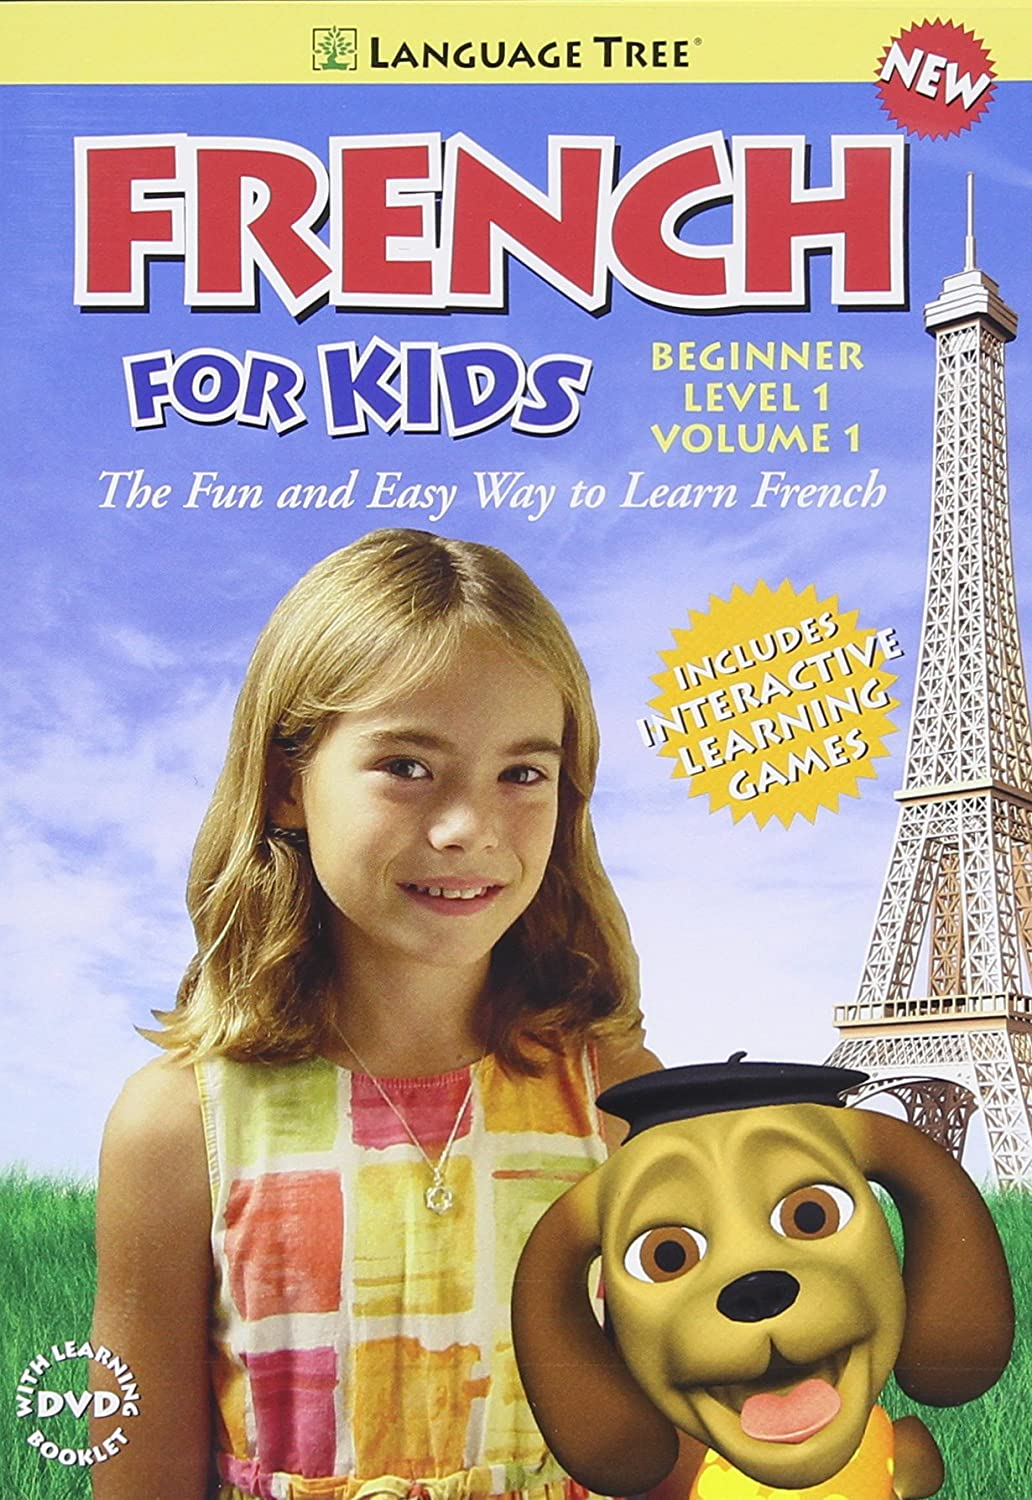 French for Kids: Learn French Beginner Level 1 vol. 1 (Bilingual) Mazel Language Tree 4 Childrens